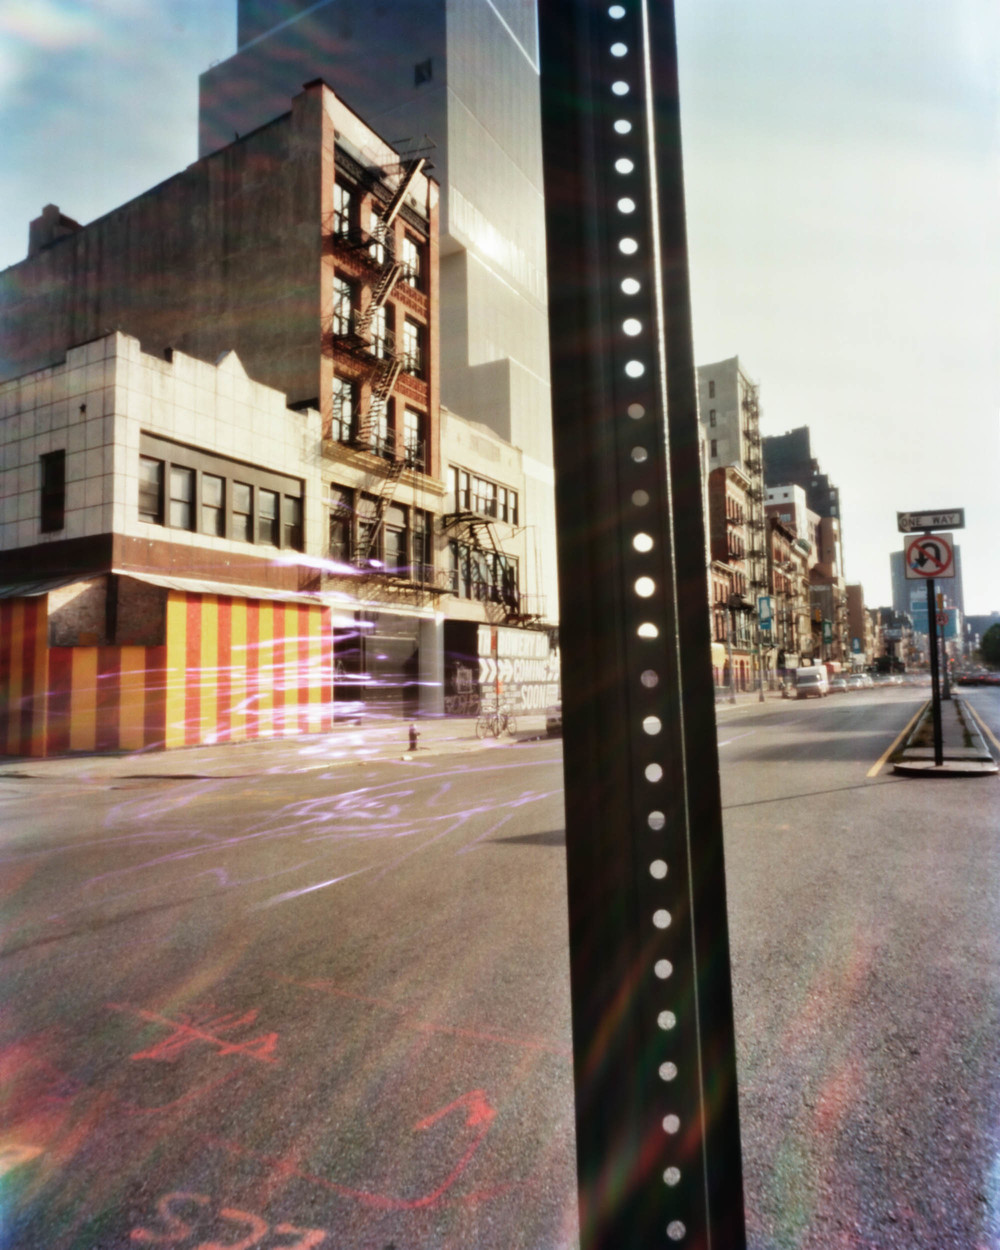 Marasco_Bowery_Towards_New_Museum.jpg